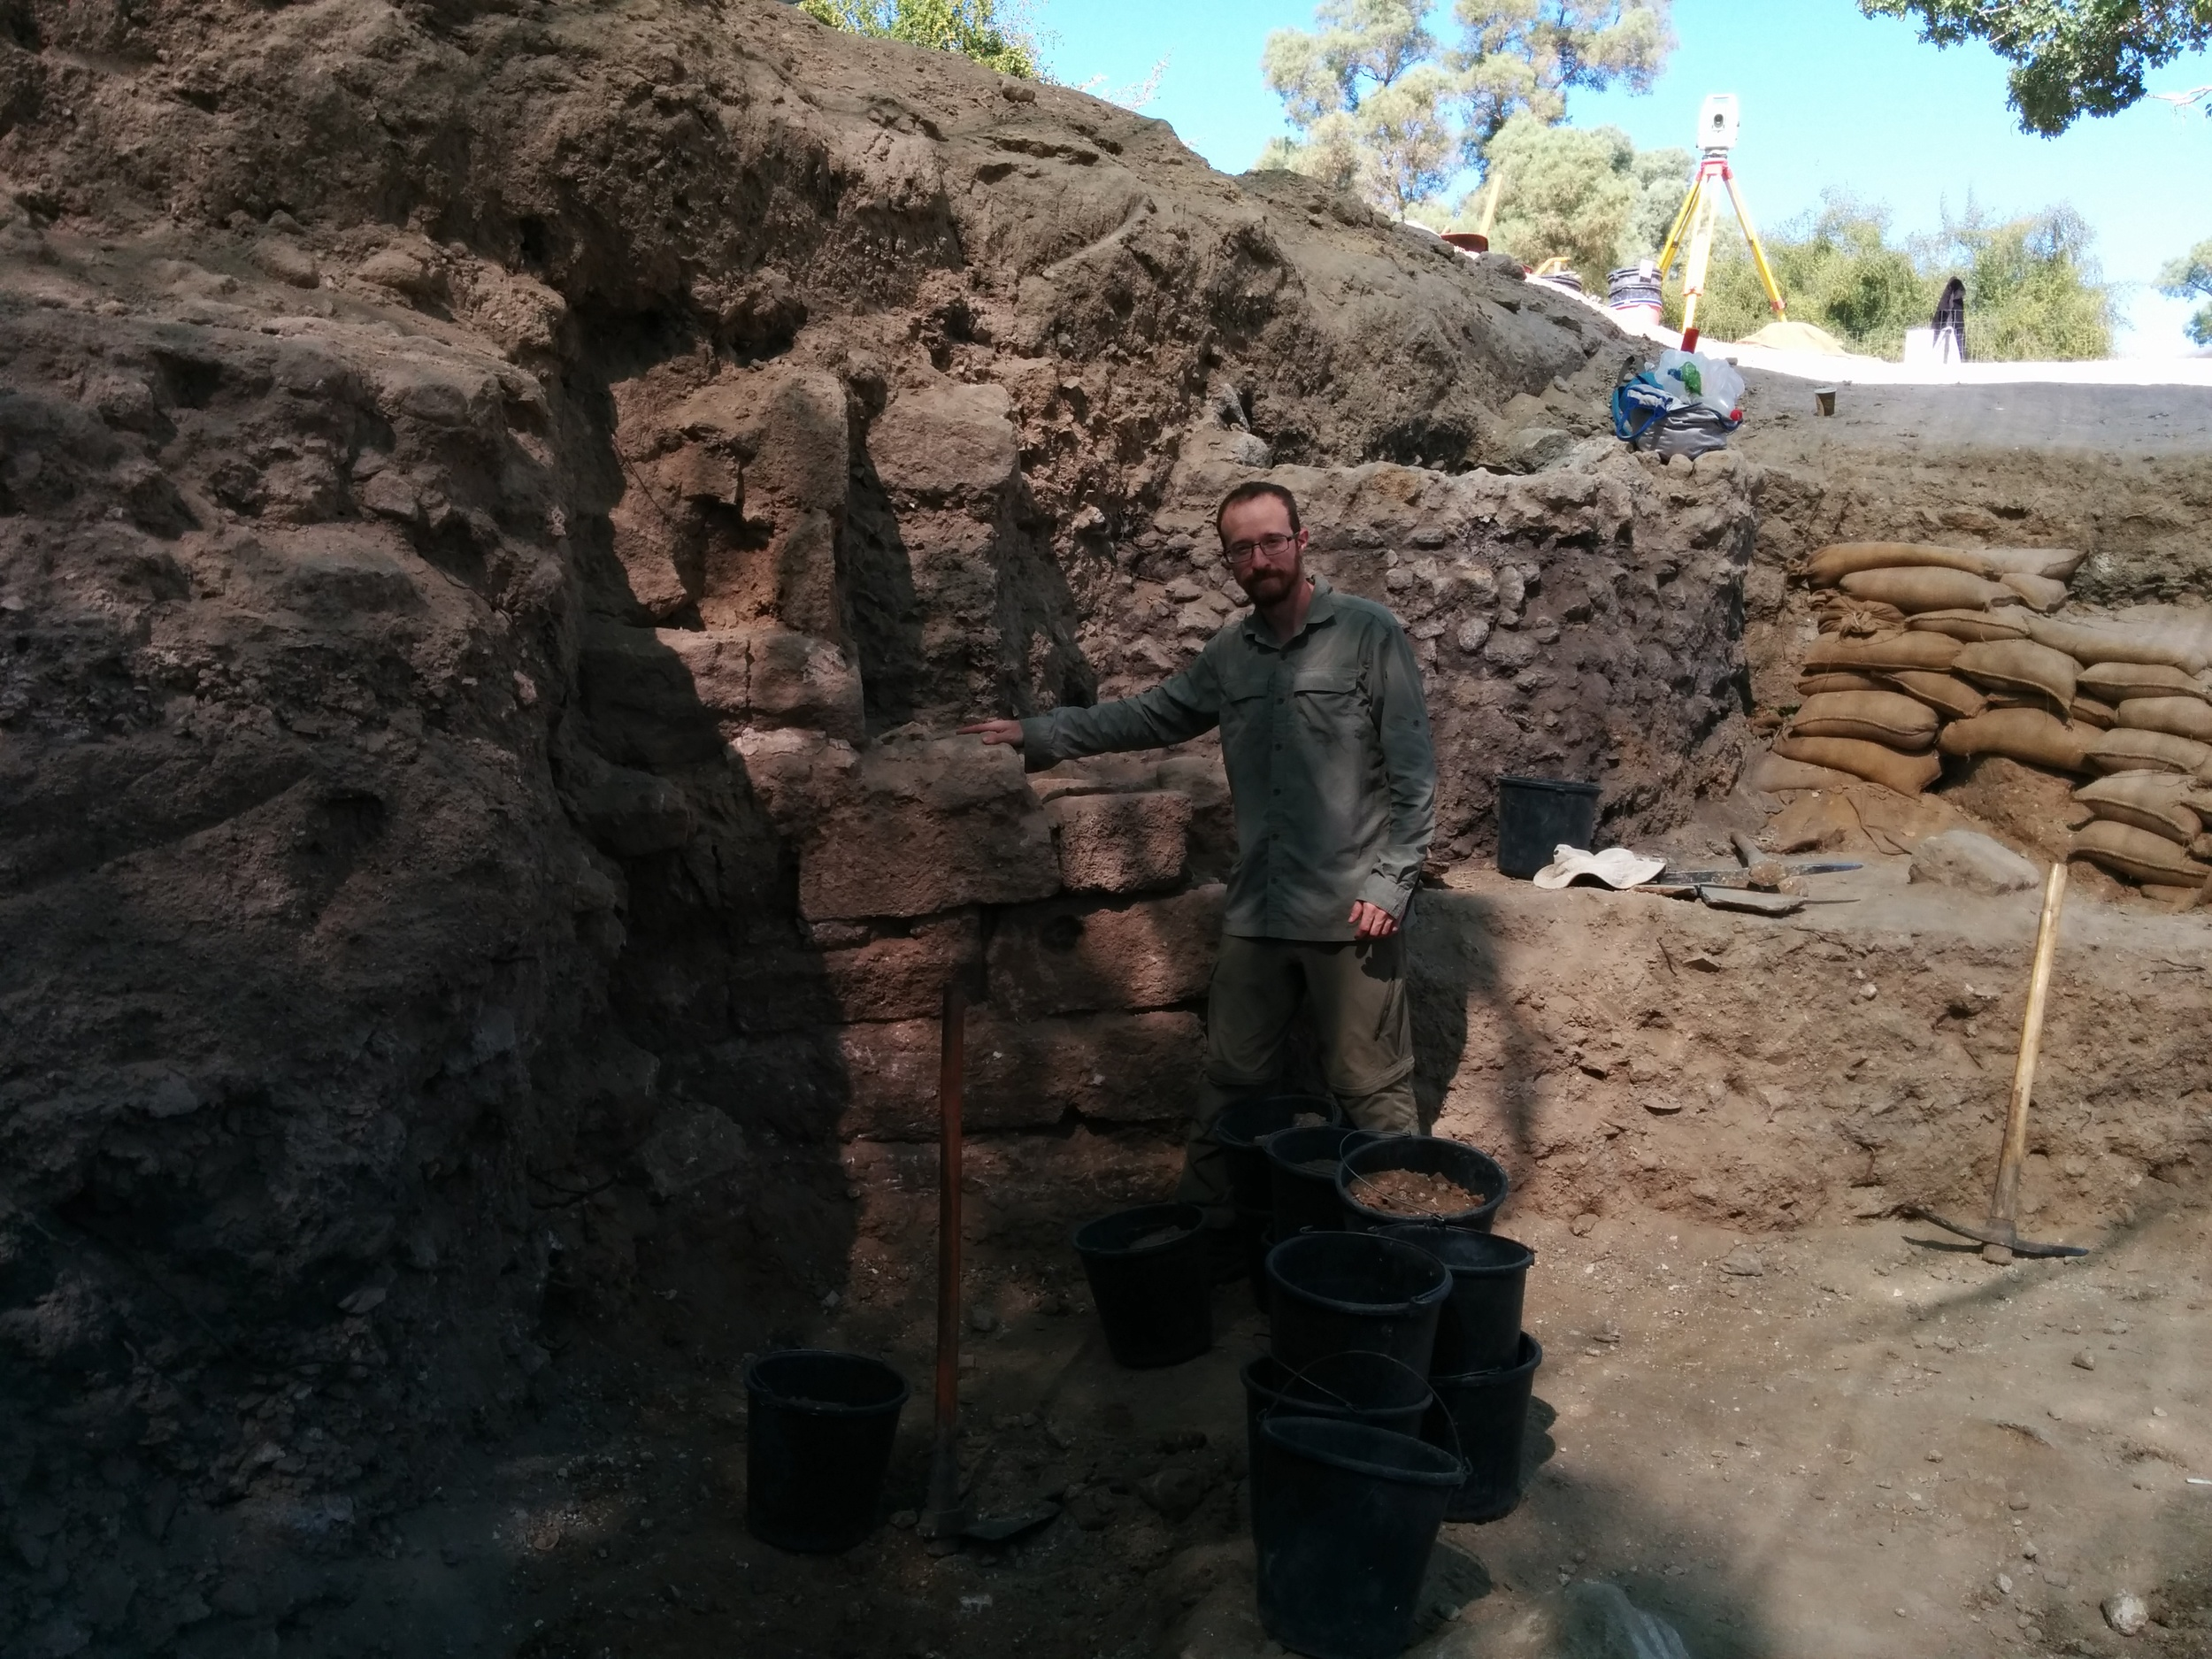 Ben standing next to a new wall/pier uncovered during excavation